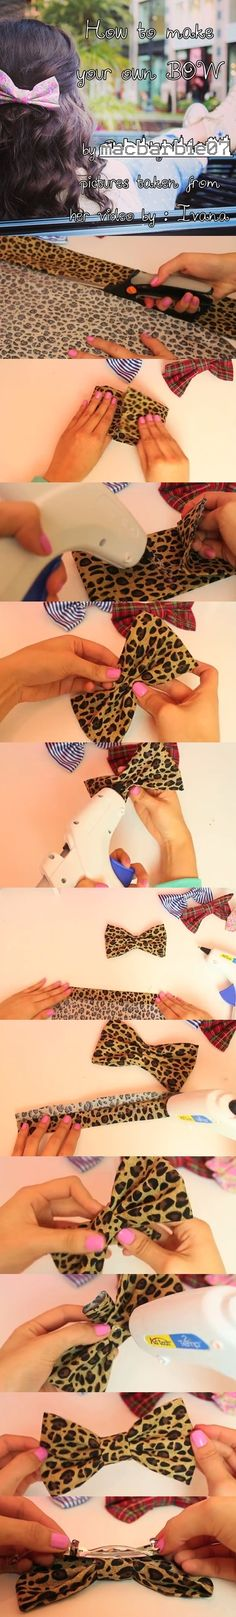 This is by Macbarbie07  I took the pictures from her video so I can make this tutorial for DIY bows.